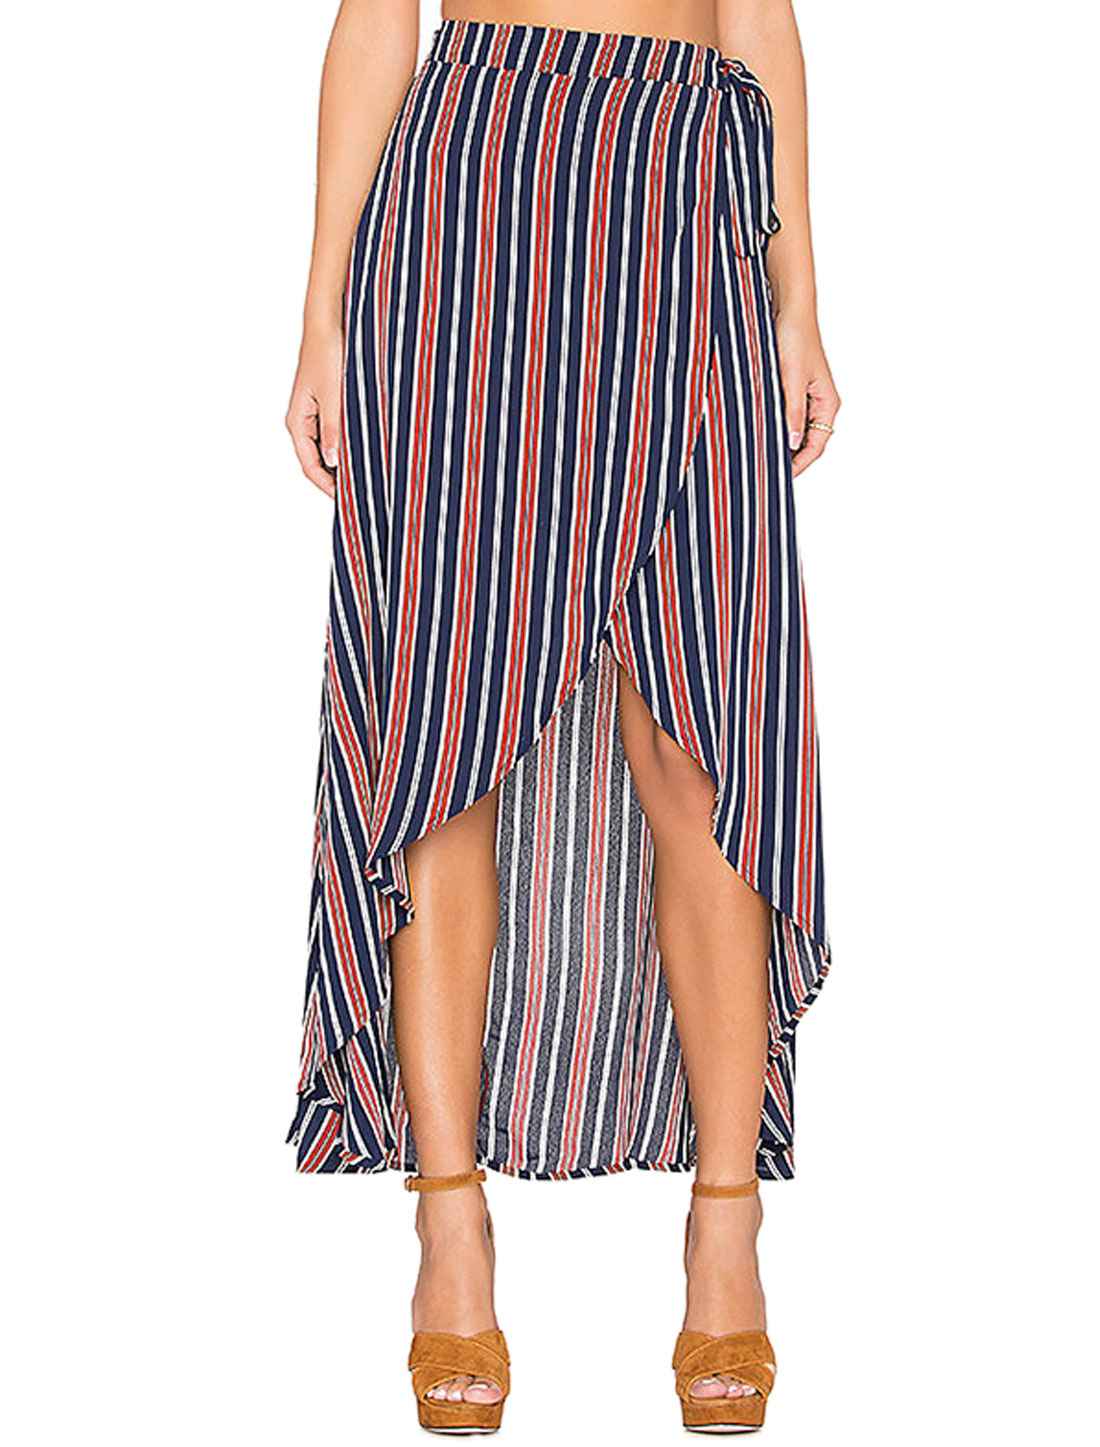 Women Stripes Contrast Color Wrap Design Belted Maxi Skirt Blue S